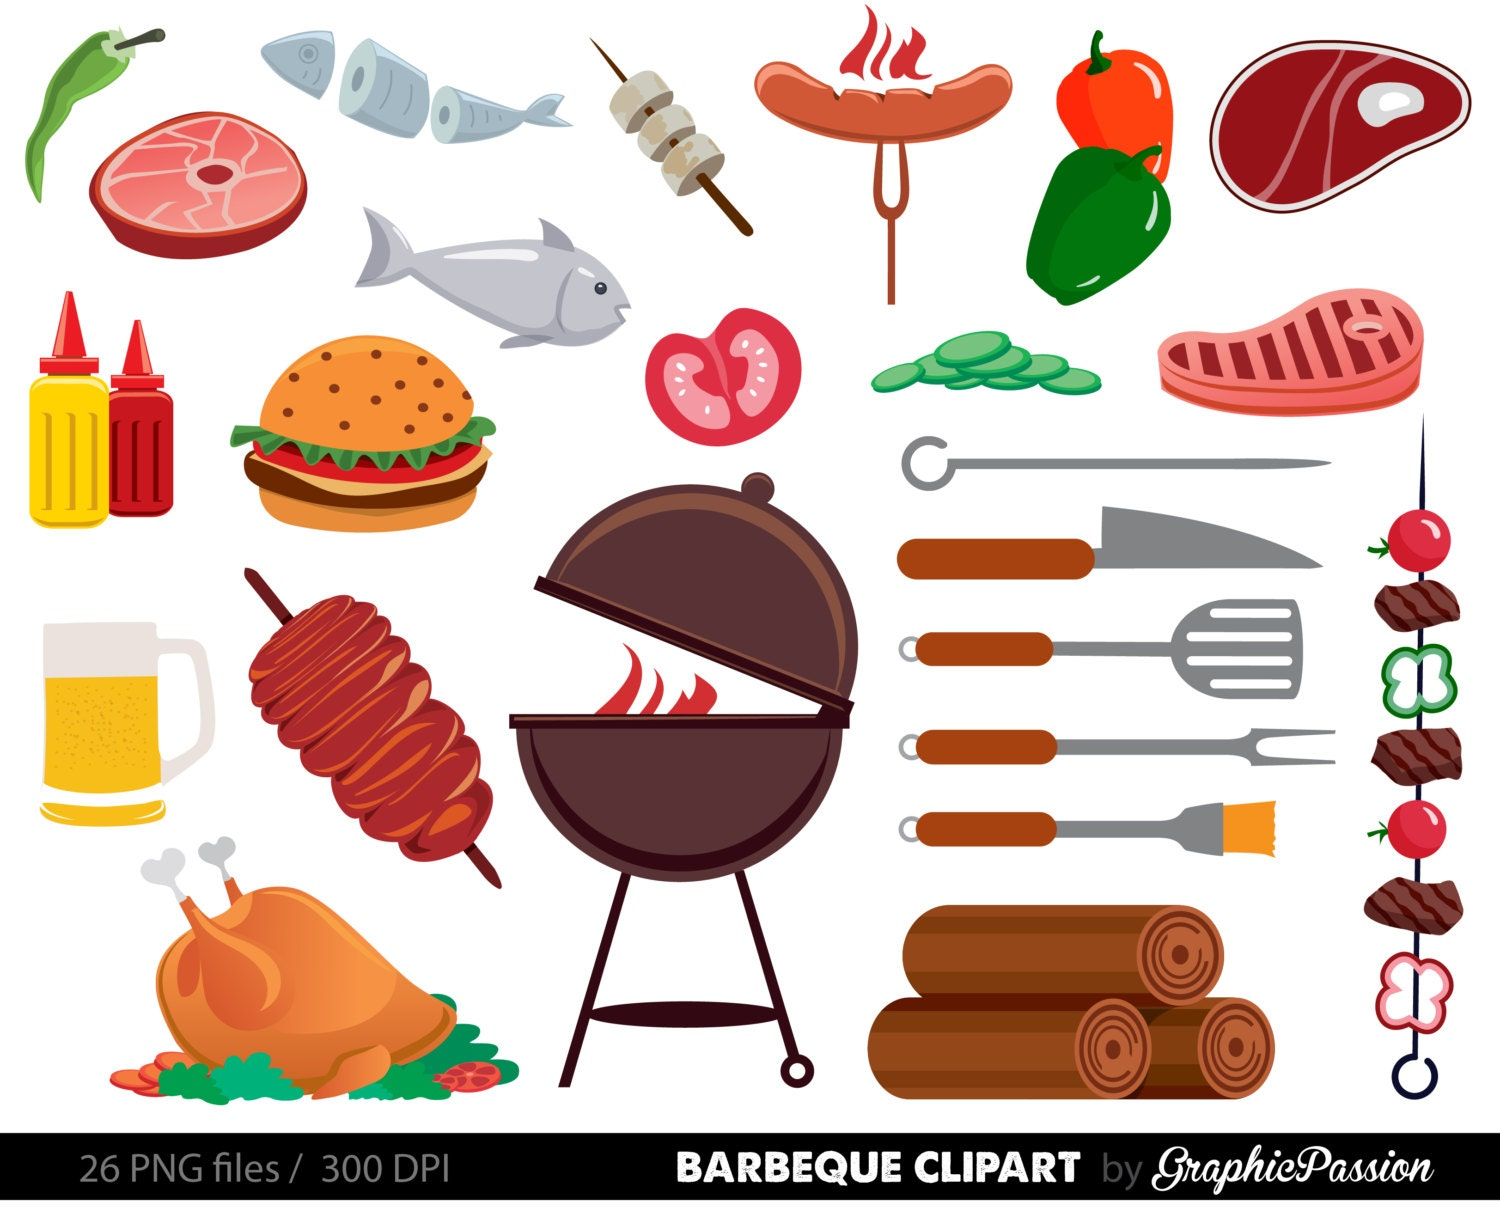 BBQ Clipart Cookout Clipart Barbeque Clipart Party Food - Backyard bbq party cartoon